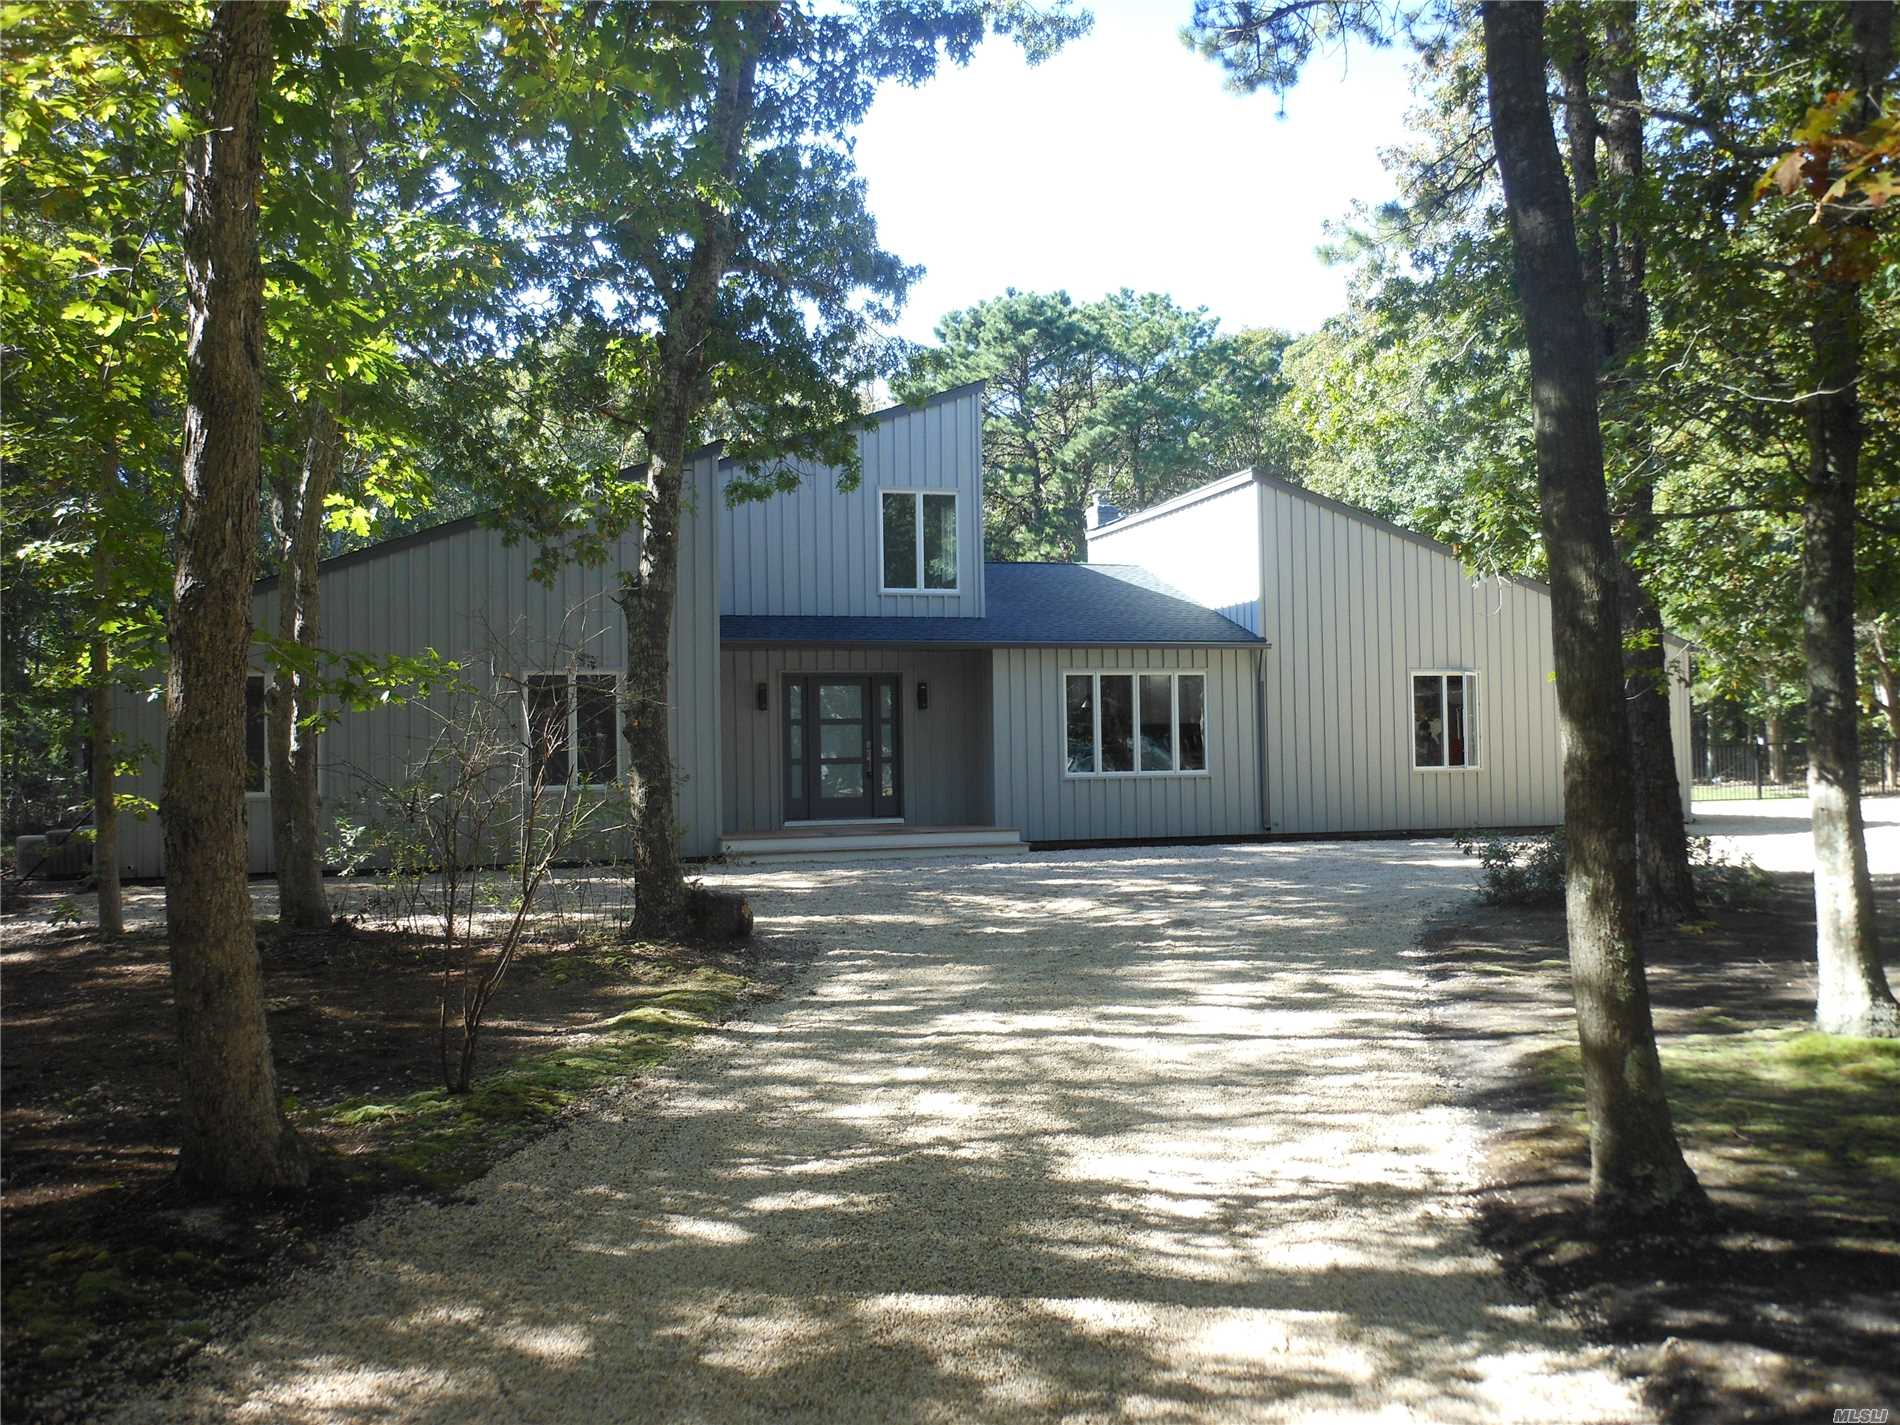 Pristine Renovated 5Br, 3 Full Bath Modern Home On 1.1 Acres Of Treed Land W/ Igp! Eik W/ Quartz Tops & Soft Close Cabinets, Bertazzoni Appliances& Hood, Hi-Hats & Oak Flooring Throughout, Lr W/ Soaring Ceilings&Brick Fpl, Master Suite Inc Full Bath And Lg Closet, Clean Sheetrocked 2C Att Gar,  6 Car Stone Circular Driveway, New Cac, Mahogany Front Porch, All New Windows, Siding, Roof, Lot Of Sunshine, Taxes W/ Star $4, 116.18 Close To Beaches, Town & Shopping! Verify All Info Supplied